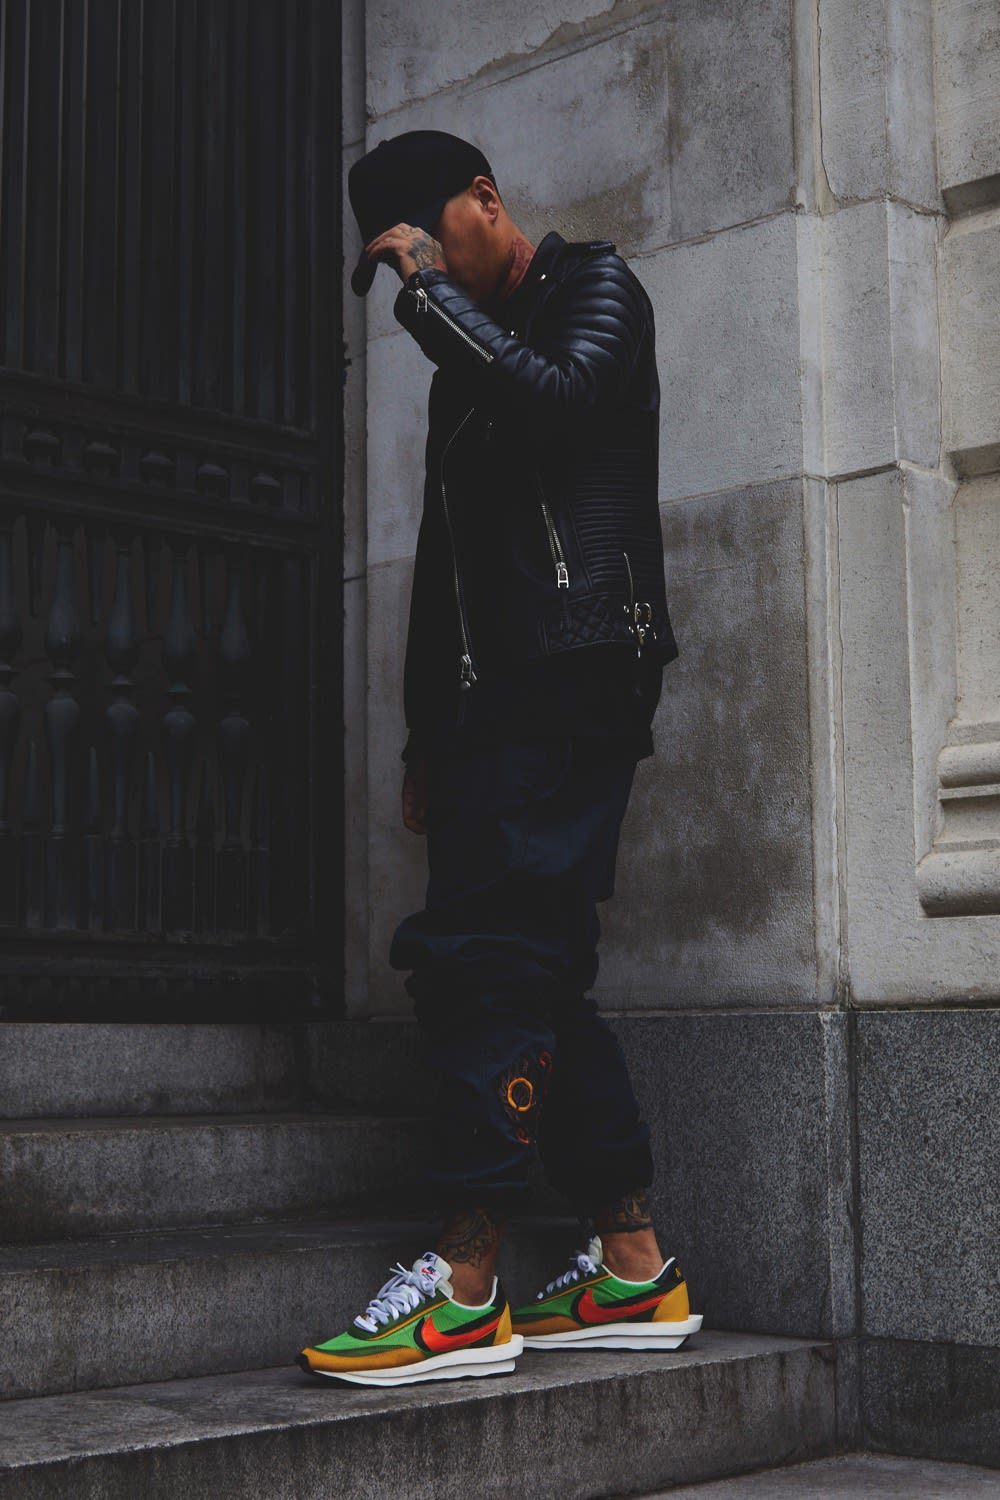 Ste Wing of Visionarism wearing Nike x Sacai LDWaffle Green/Multi and Maharishi pants for END.